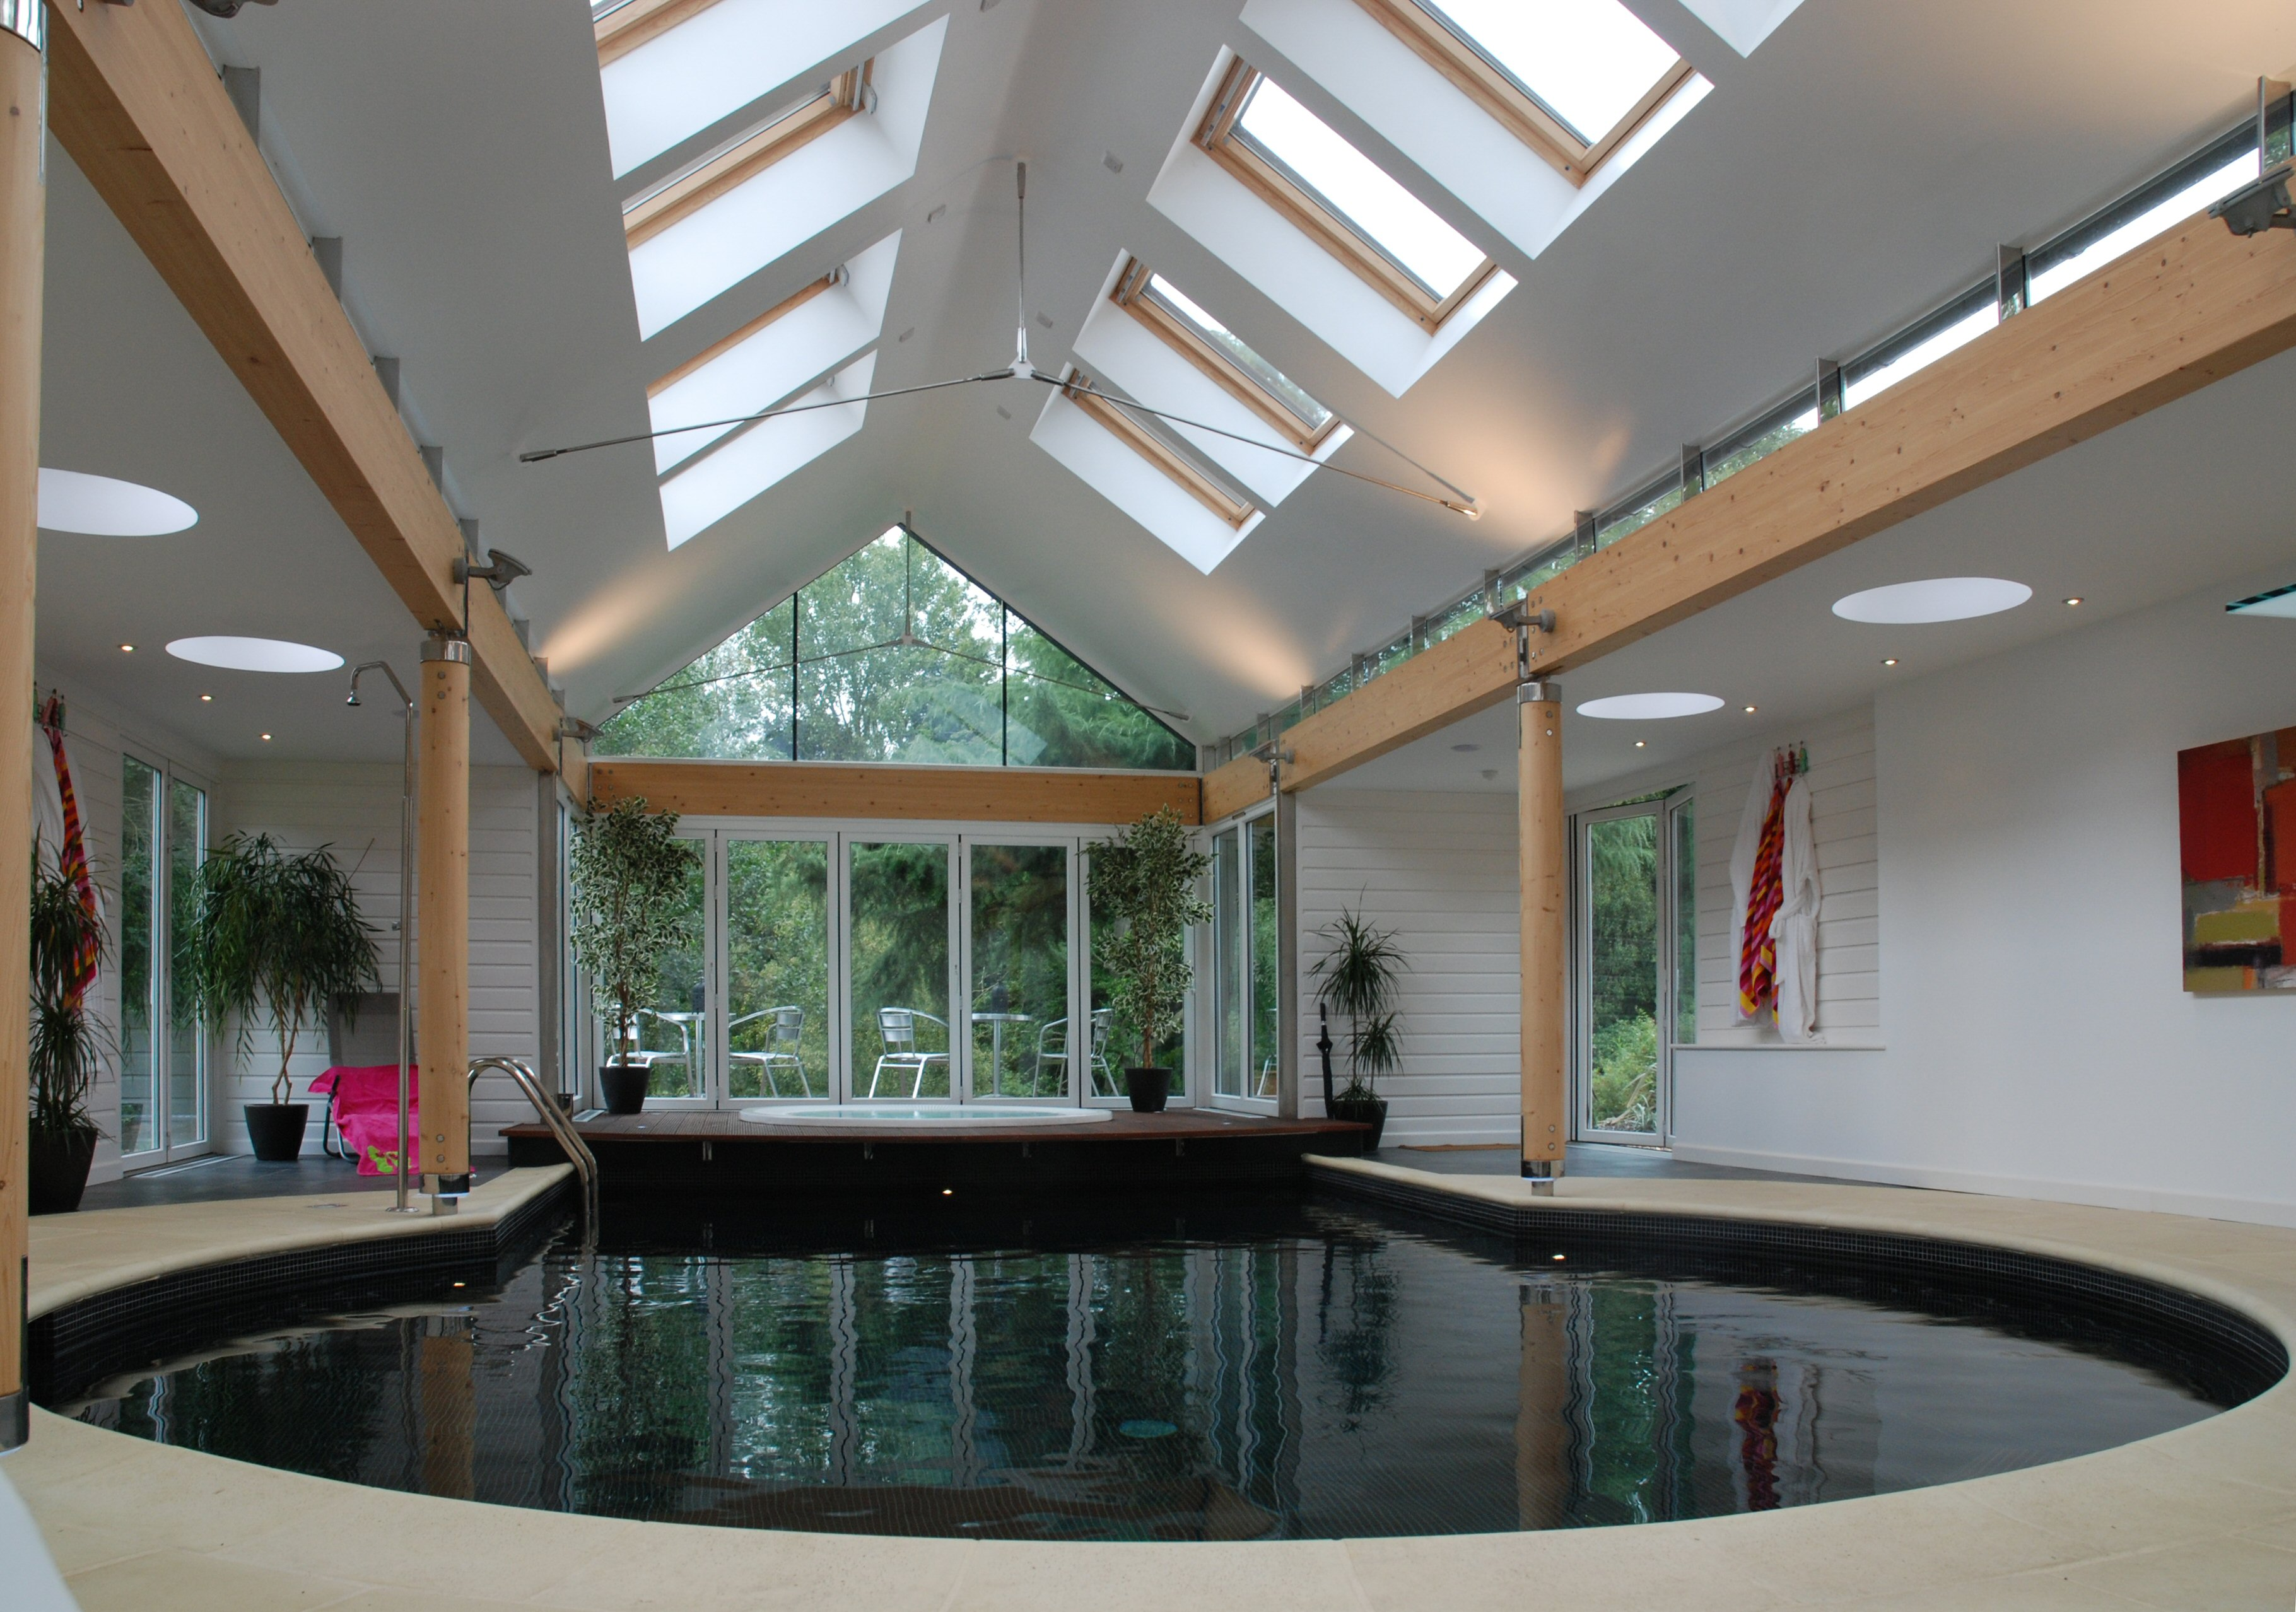 Modern private spa complex. Hot tub set in wooden decking next to a calm relaxing pool. Architectural design services from Inspiration Architects